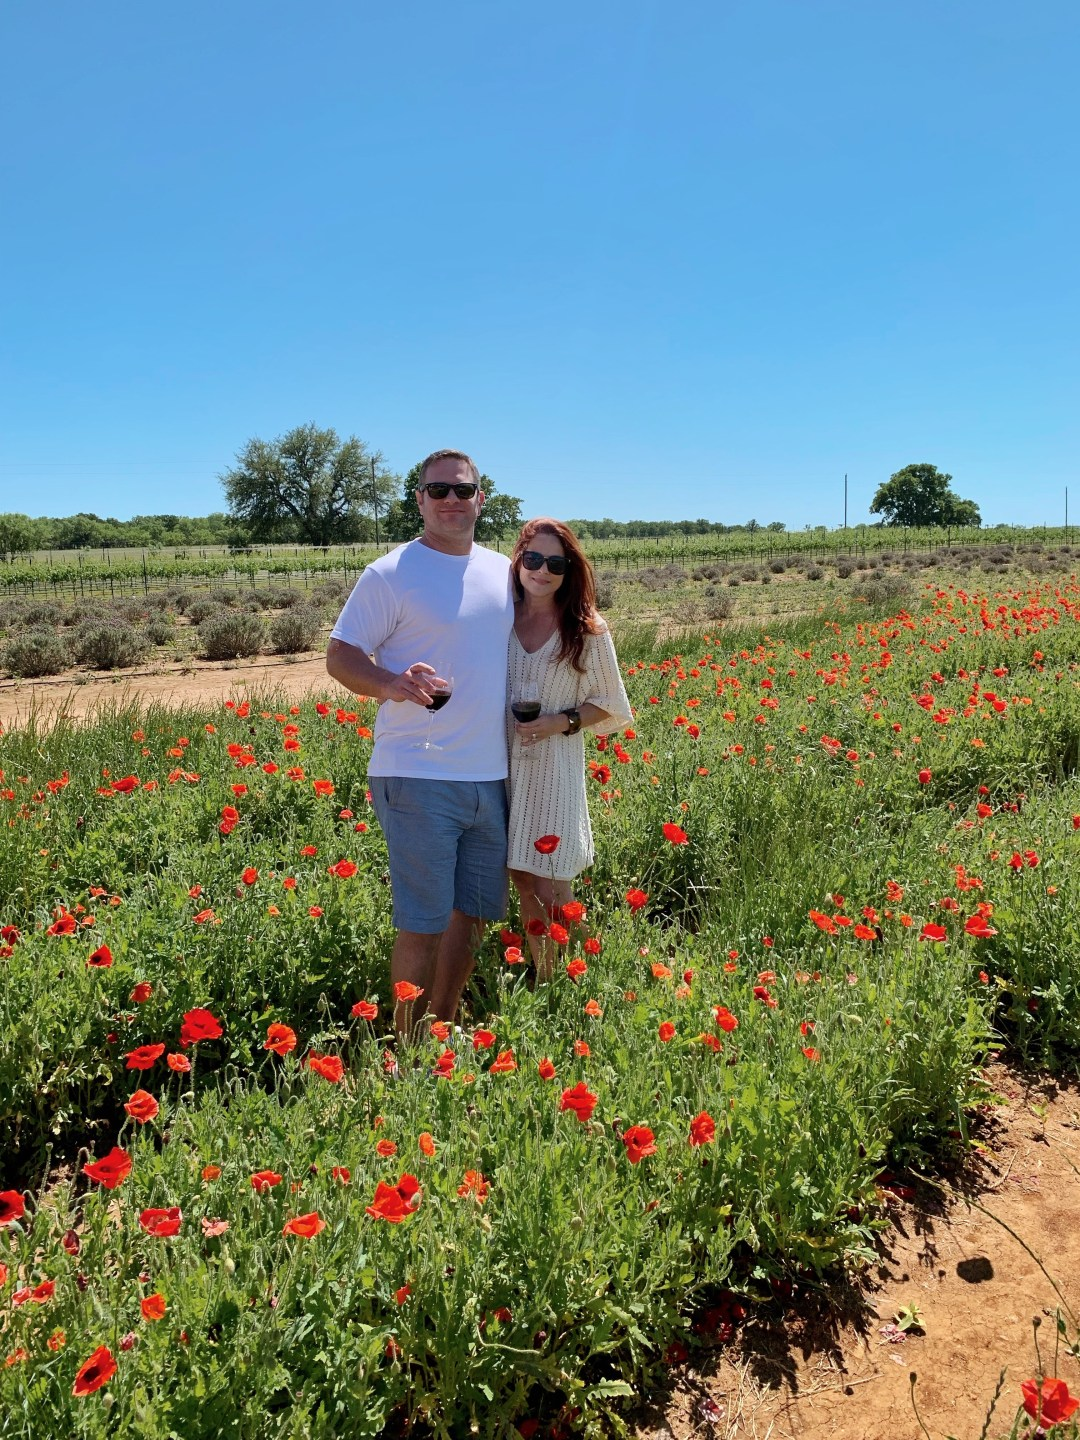 texas wineries, couple weekend trip ideas, wineries in Texas, Hill Country, red poppies